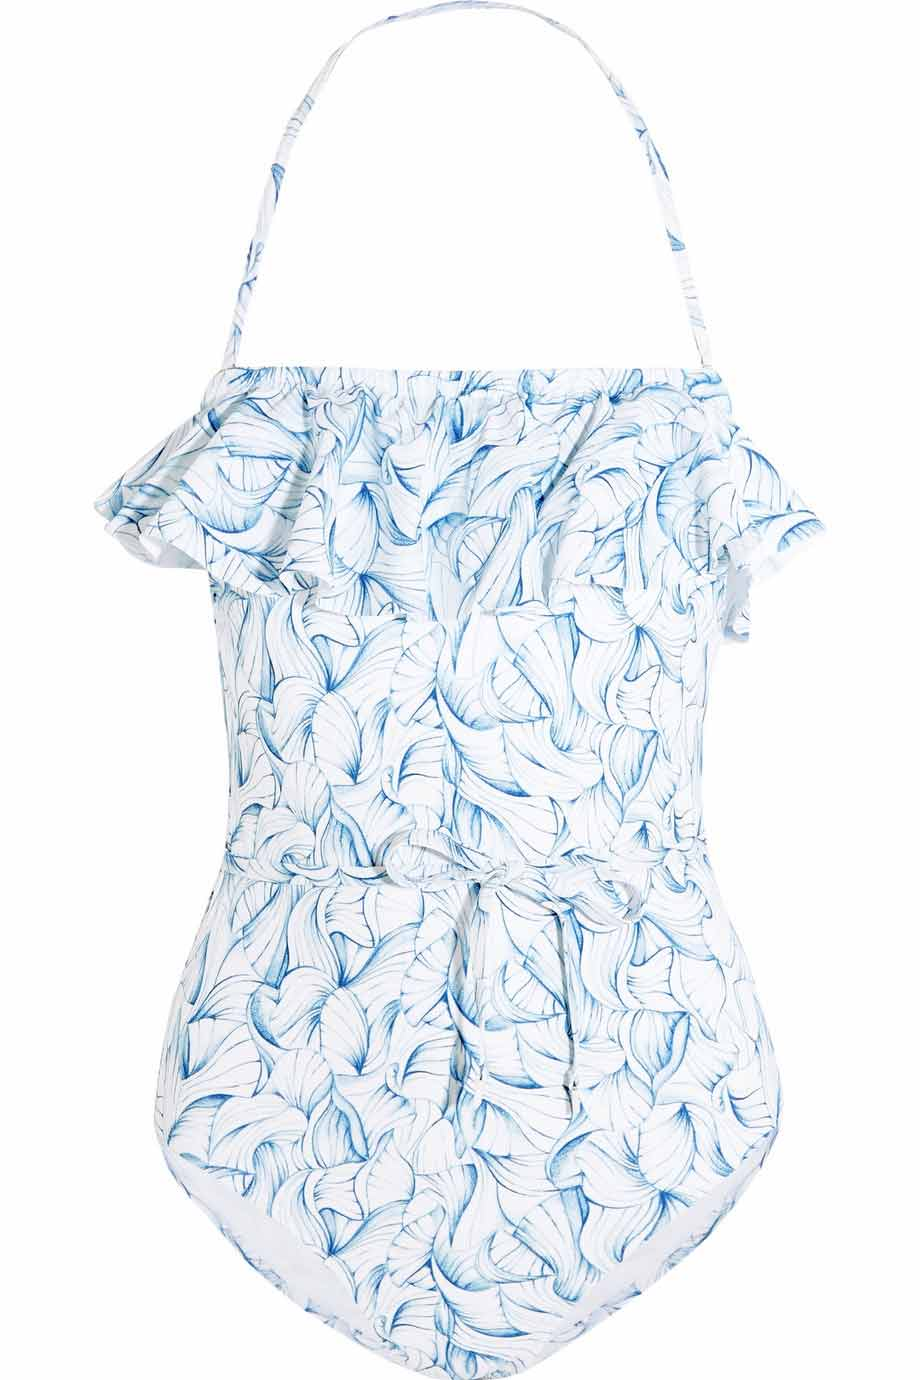 Sapri ruffled printed swimsuit, £230, Tory Burch. www.net-a-porter.com